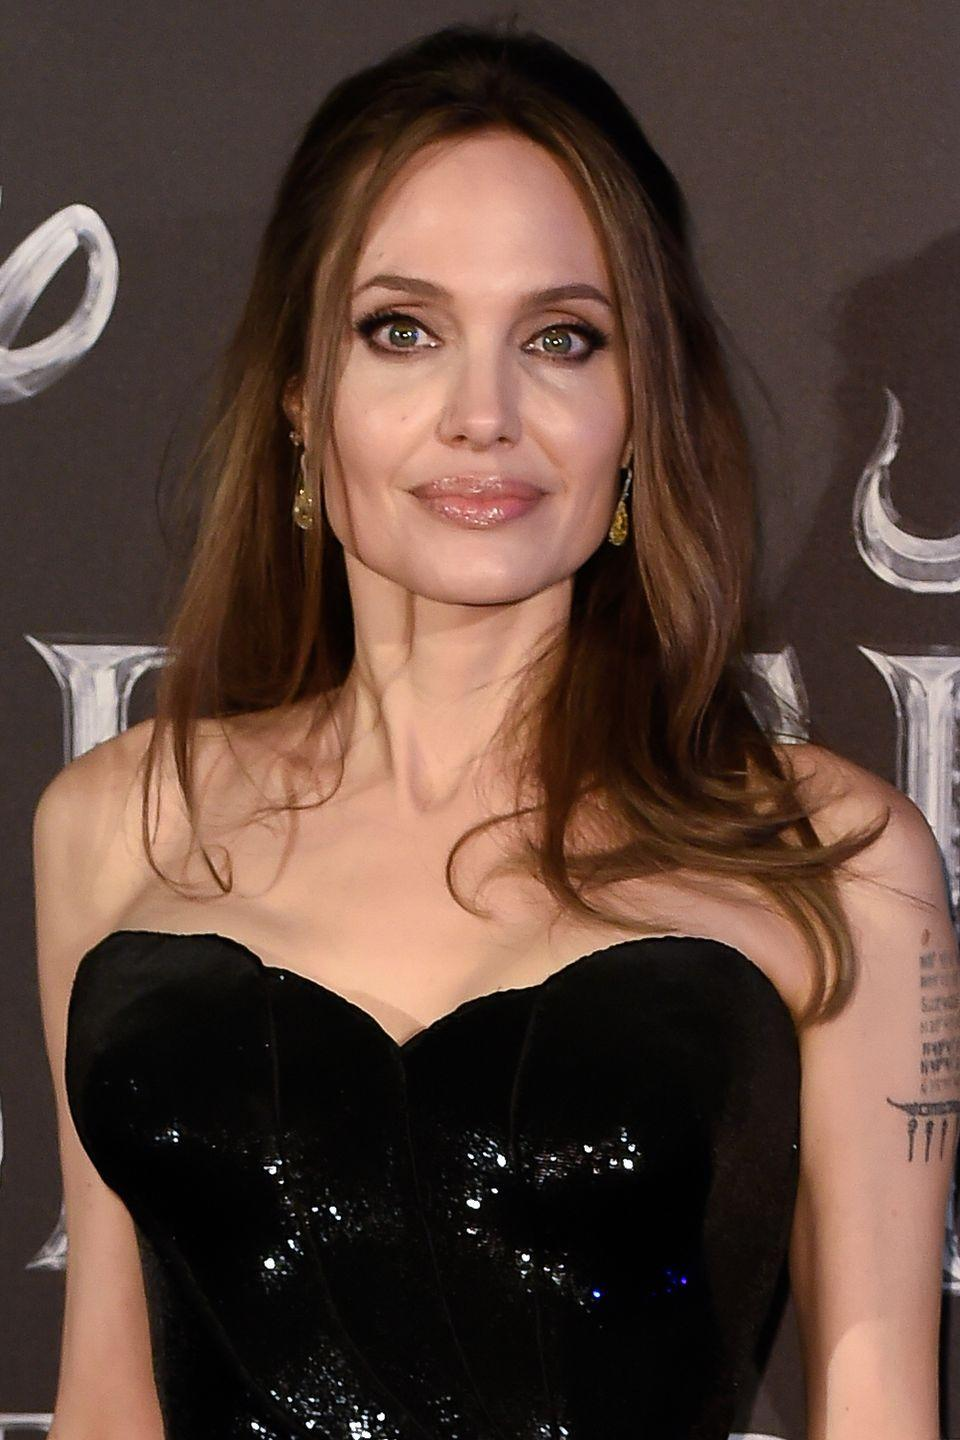 <p>Like a true bombshell, Jolie's waves are perfectly voluminous and messy, yet still chic enough to wear on the red carpet.</p>